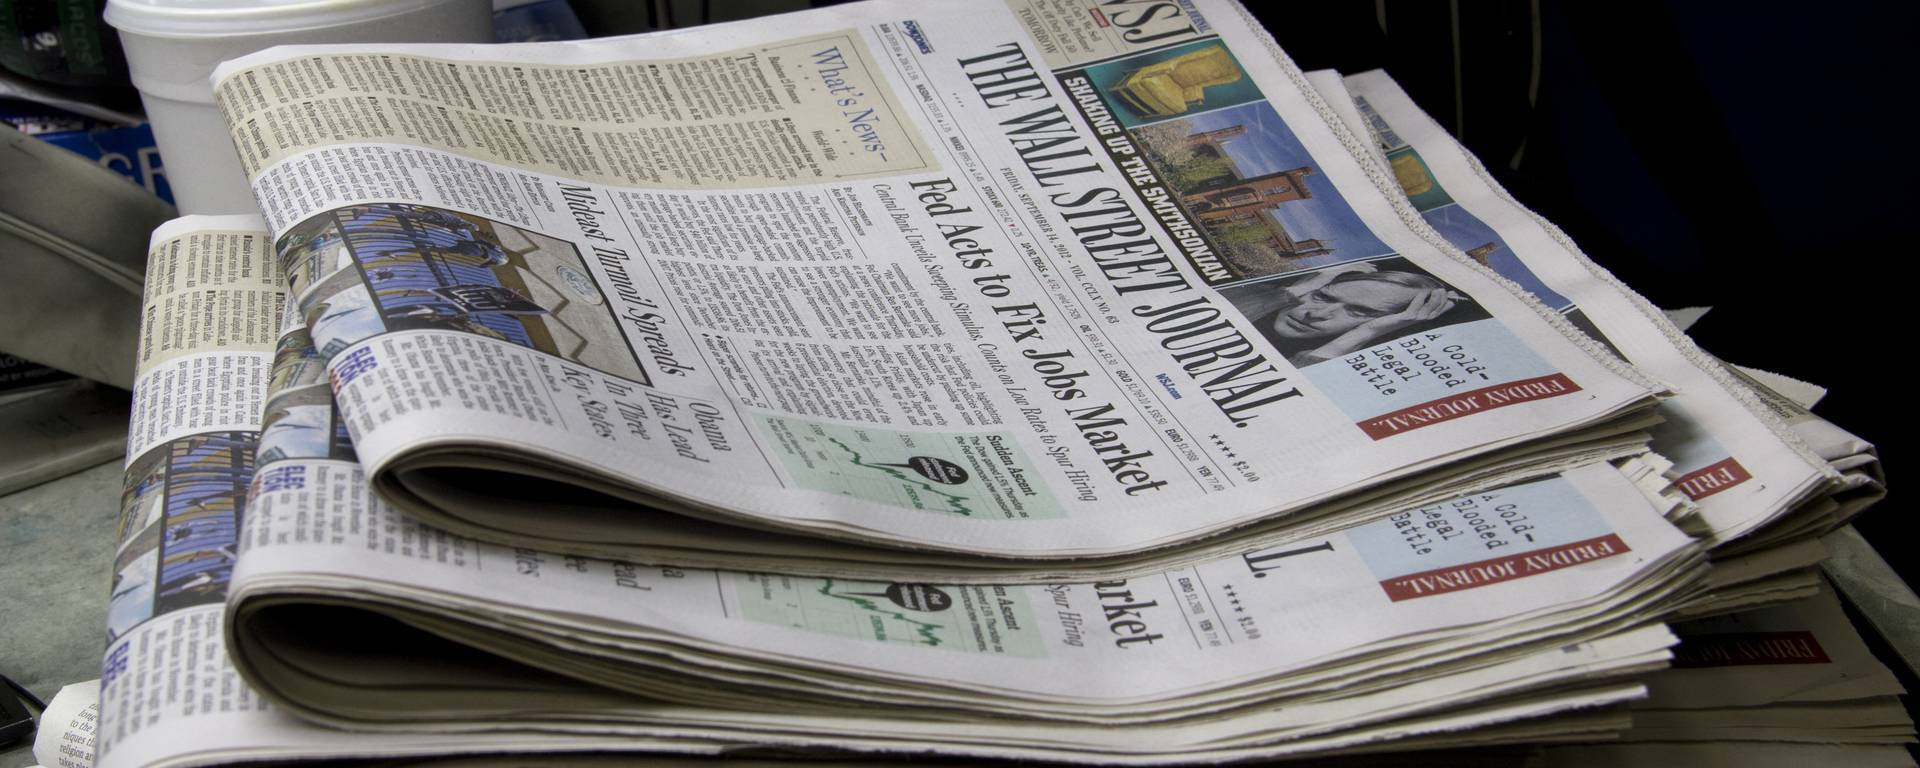 The Wall Street Journal gets printed for delivery in Los Angeles